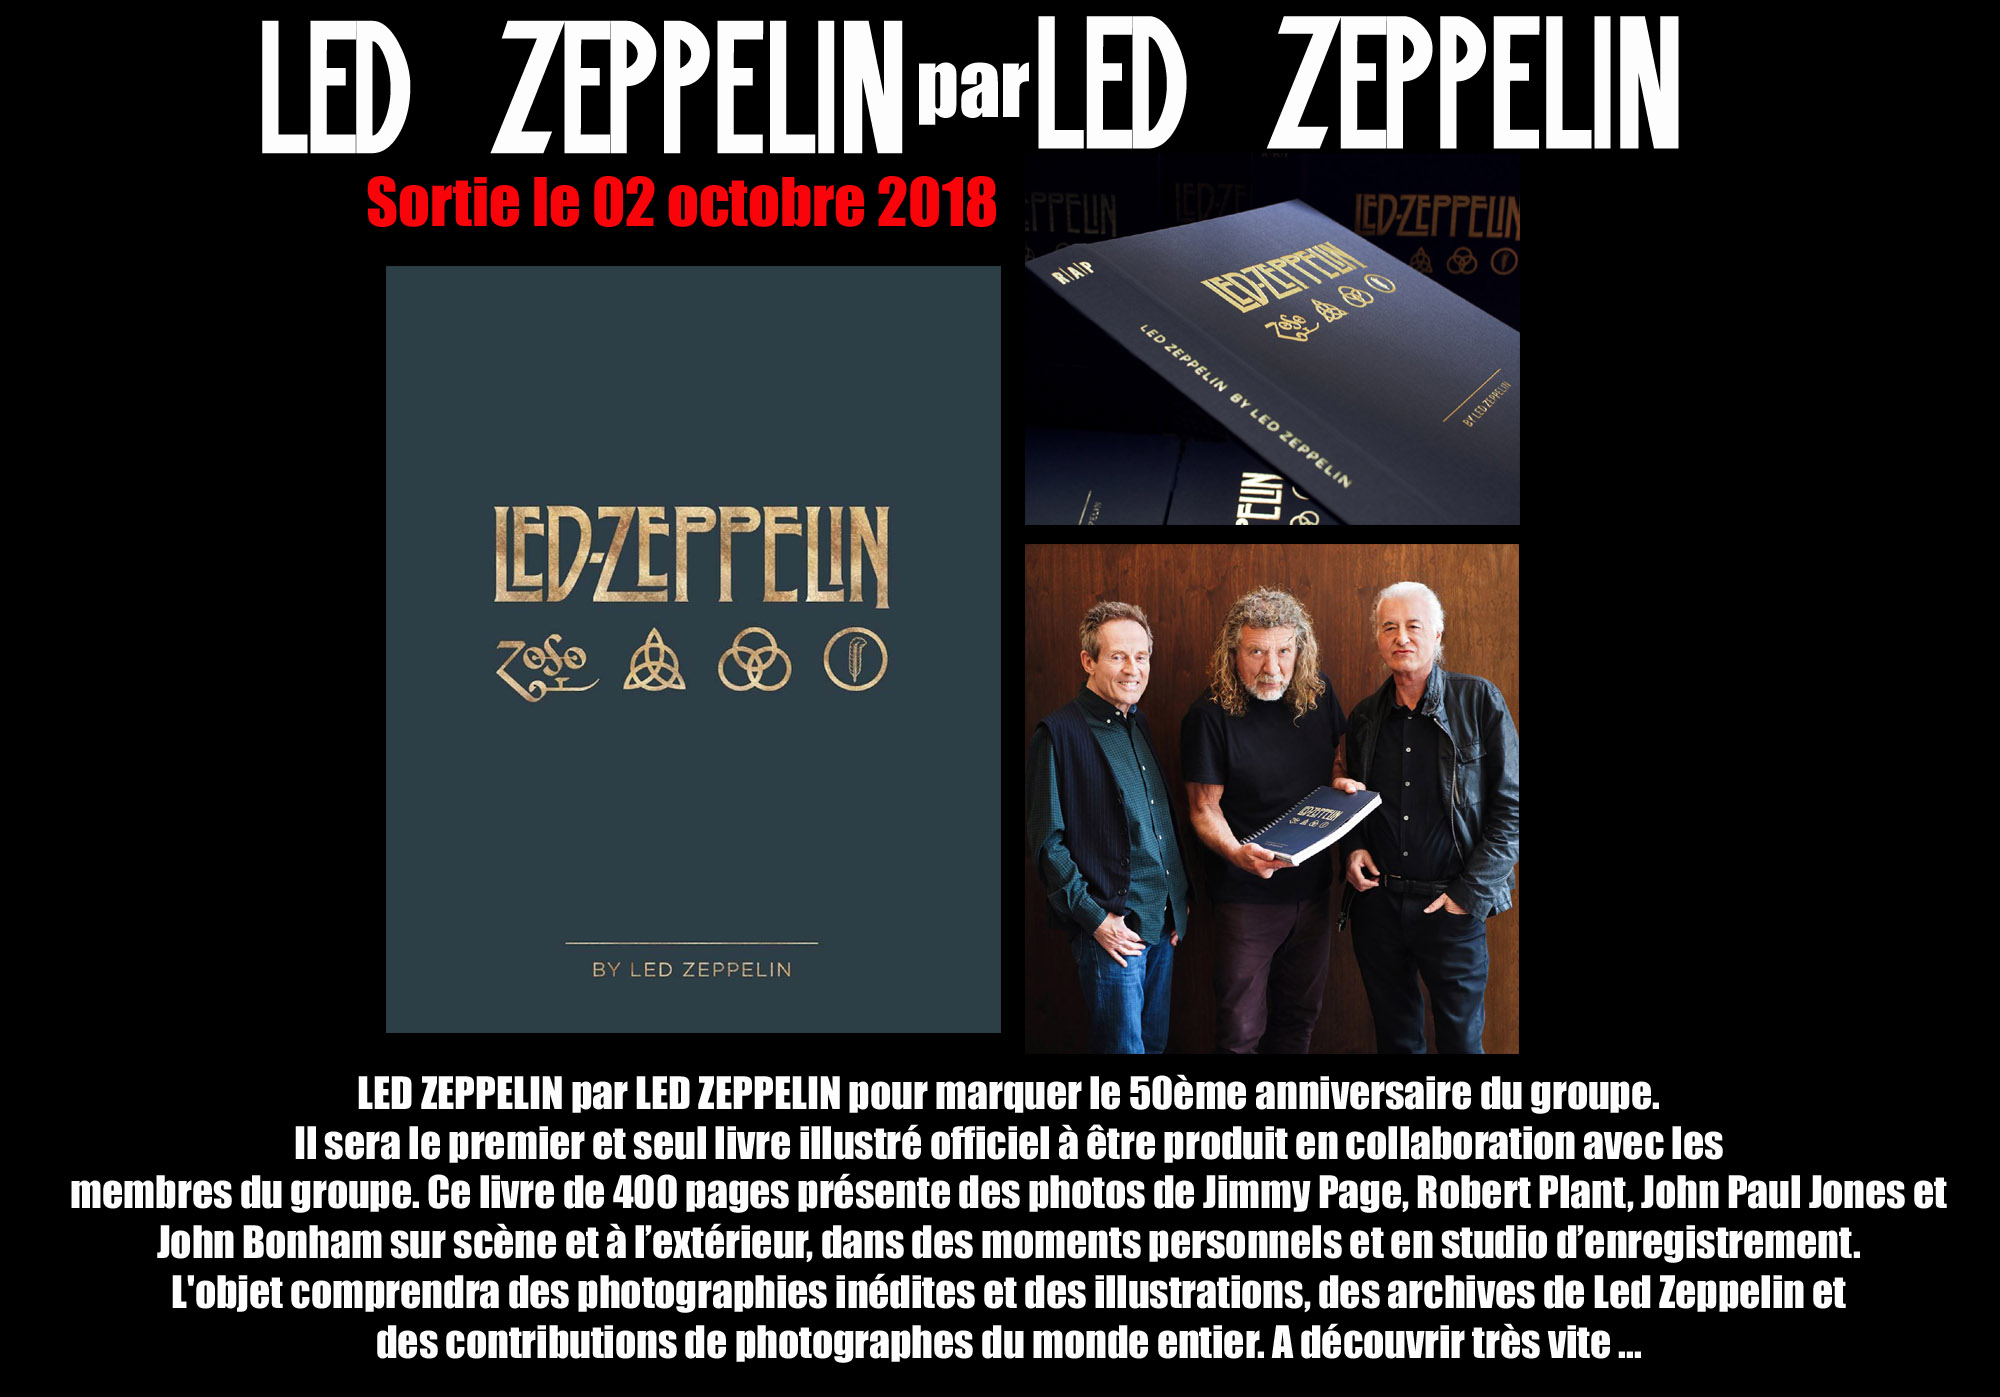 LED ZEPPELIN par LED ZEPPELIN Le livre officiel en collaboration avec le groupe ... (2018) 512